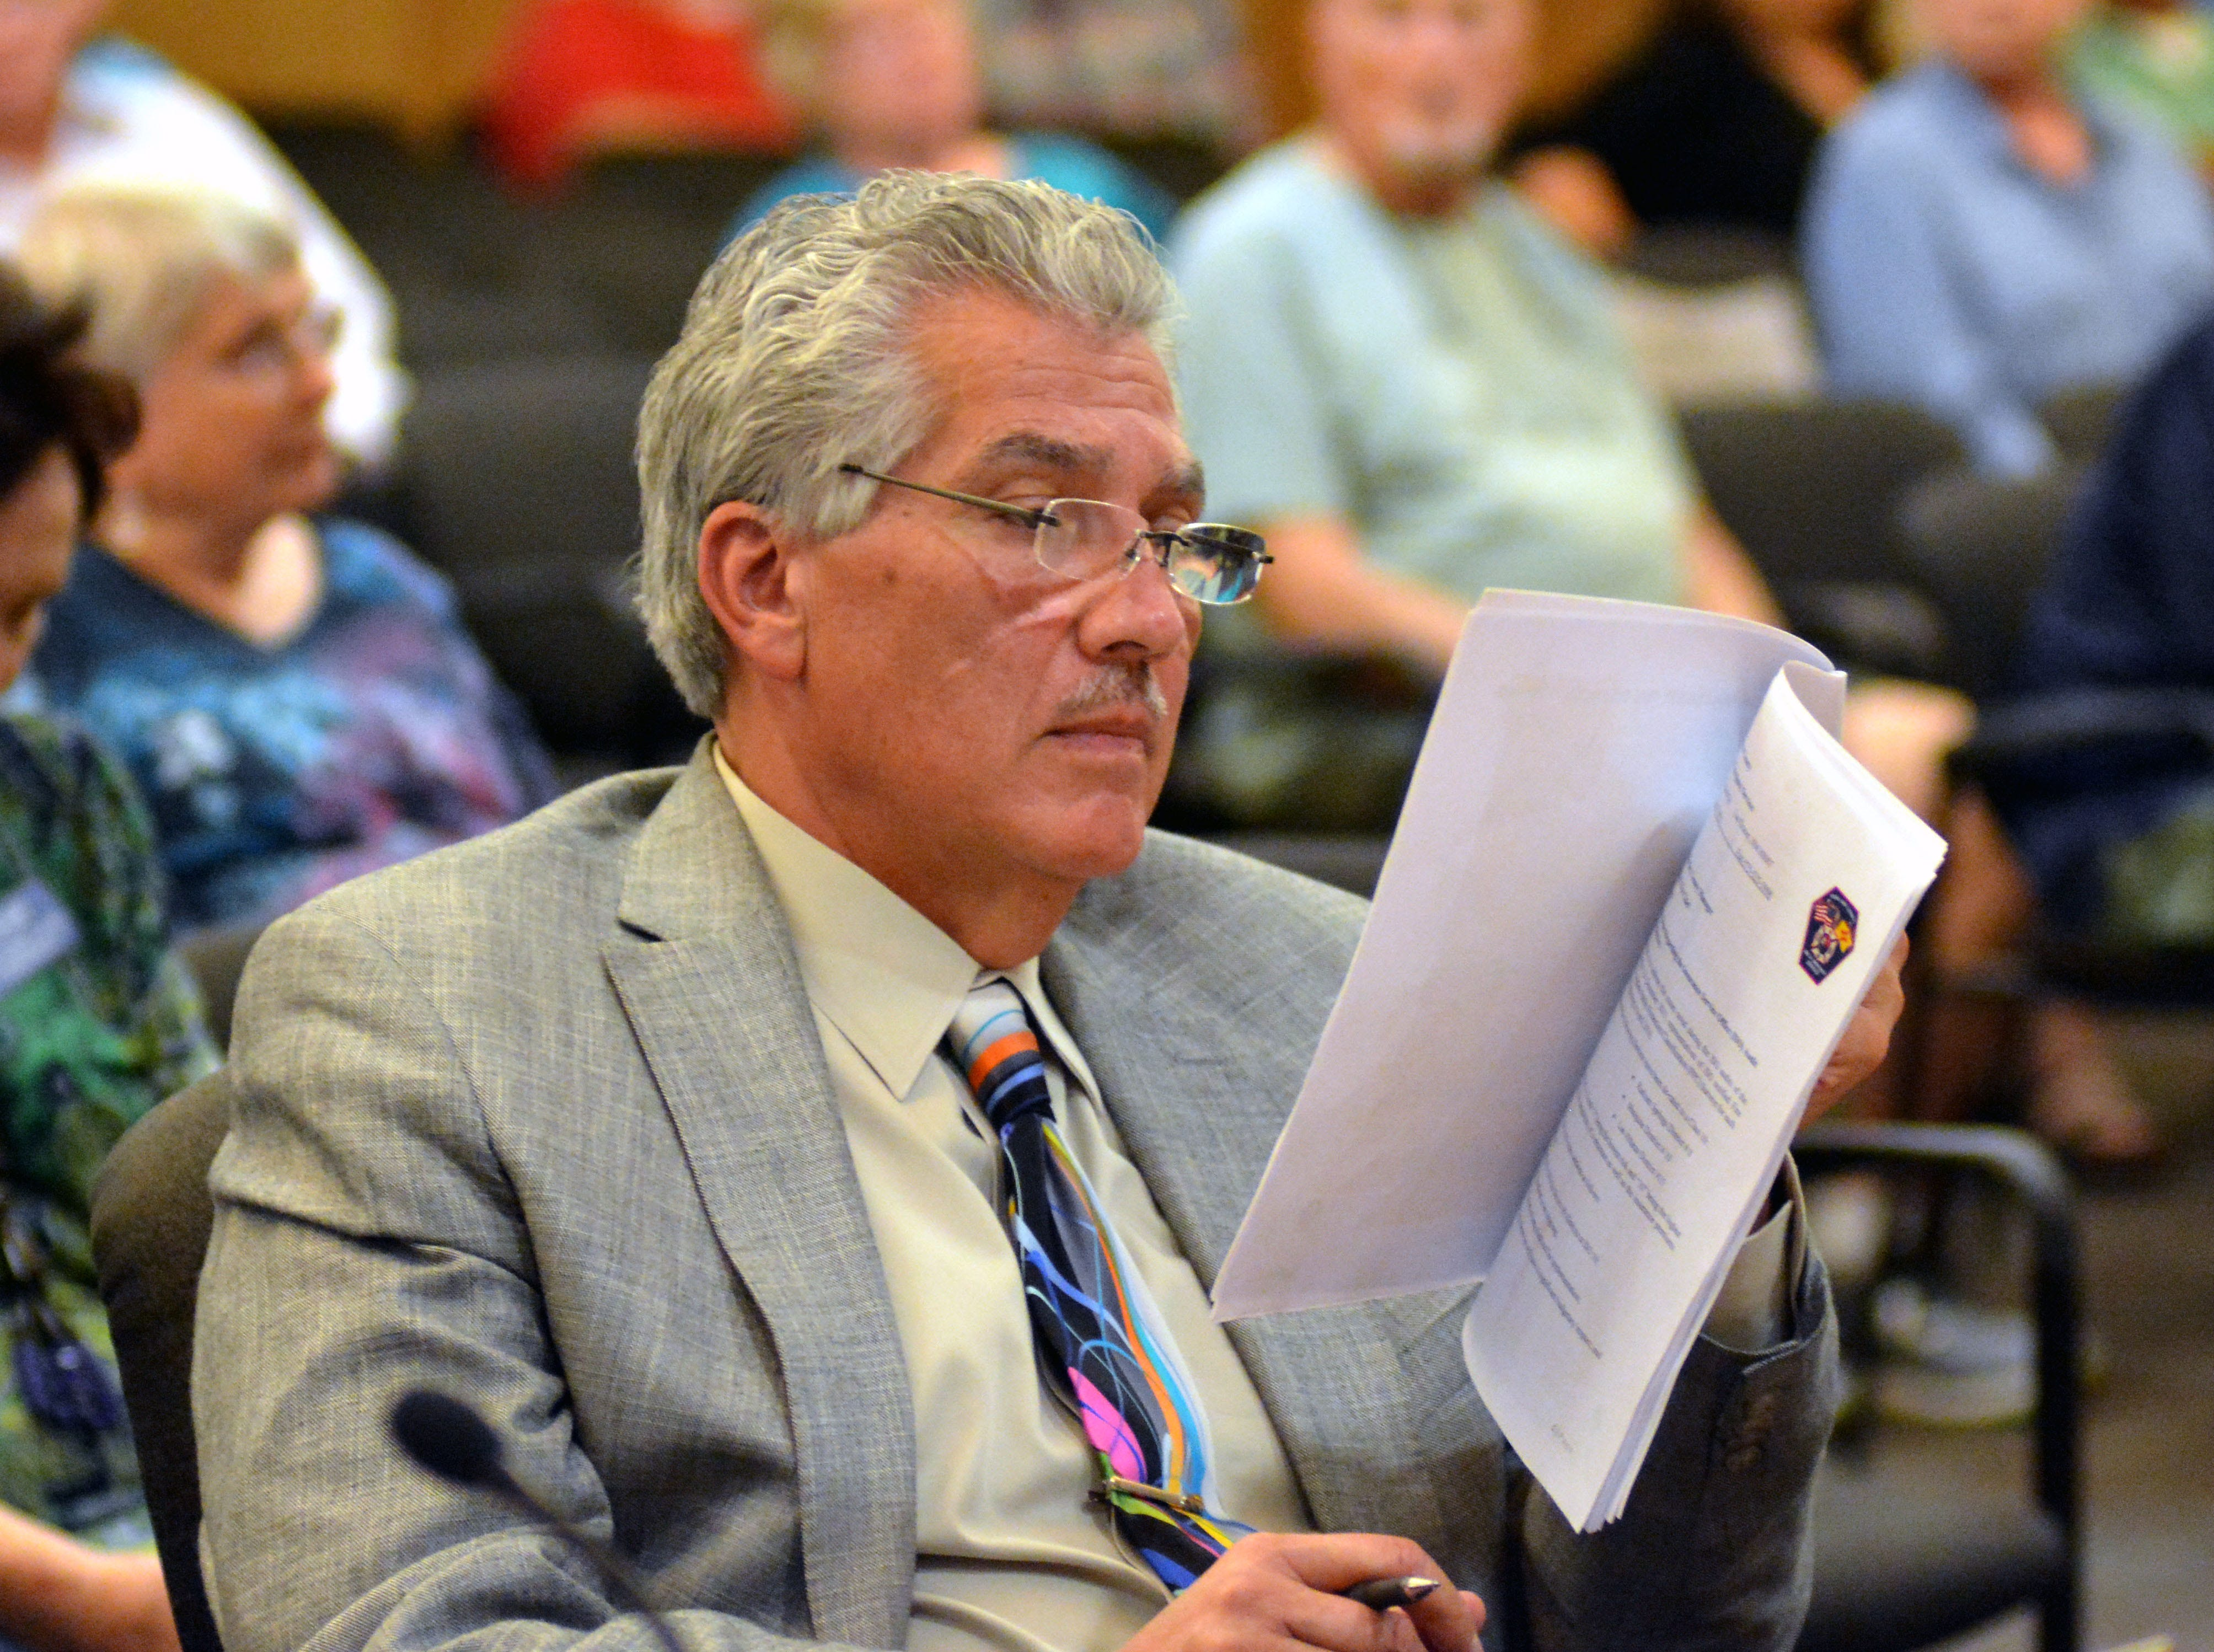 Doña Ana County Manager Fernando Macias looks over a resolution as residents voice their opinions Tuesday, Sept. 4, 2018, at a special meeting of the Doña Ana County Commission.